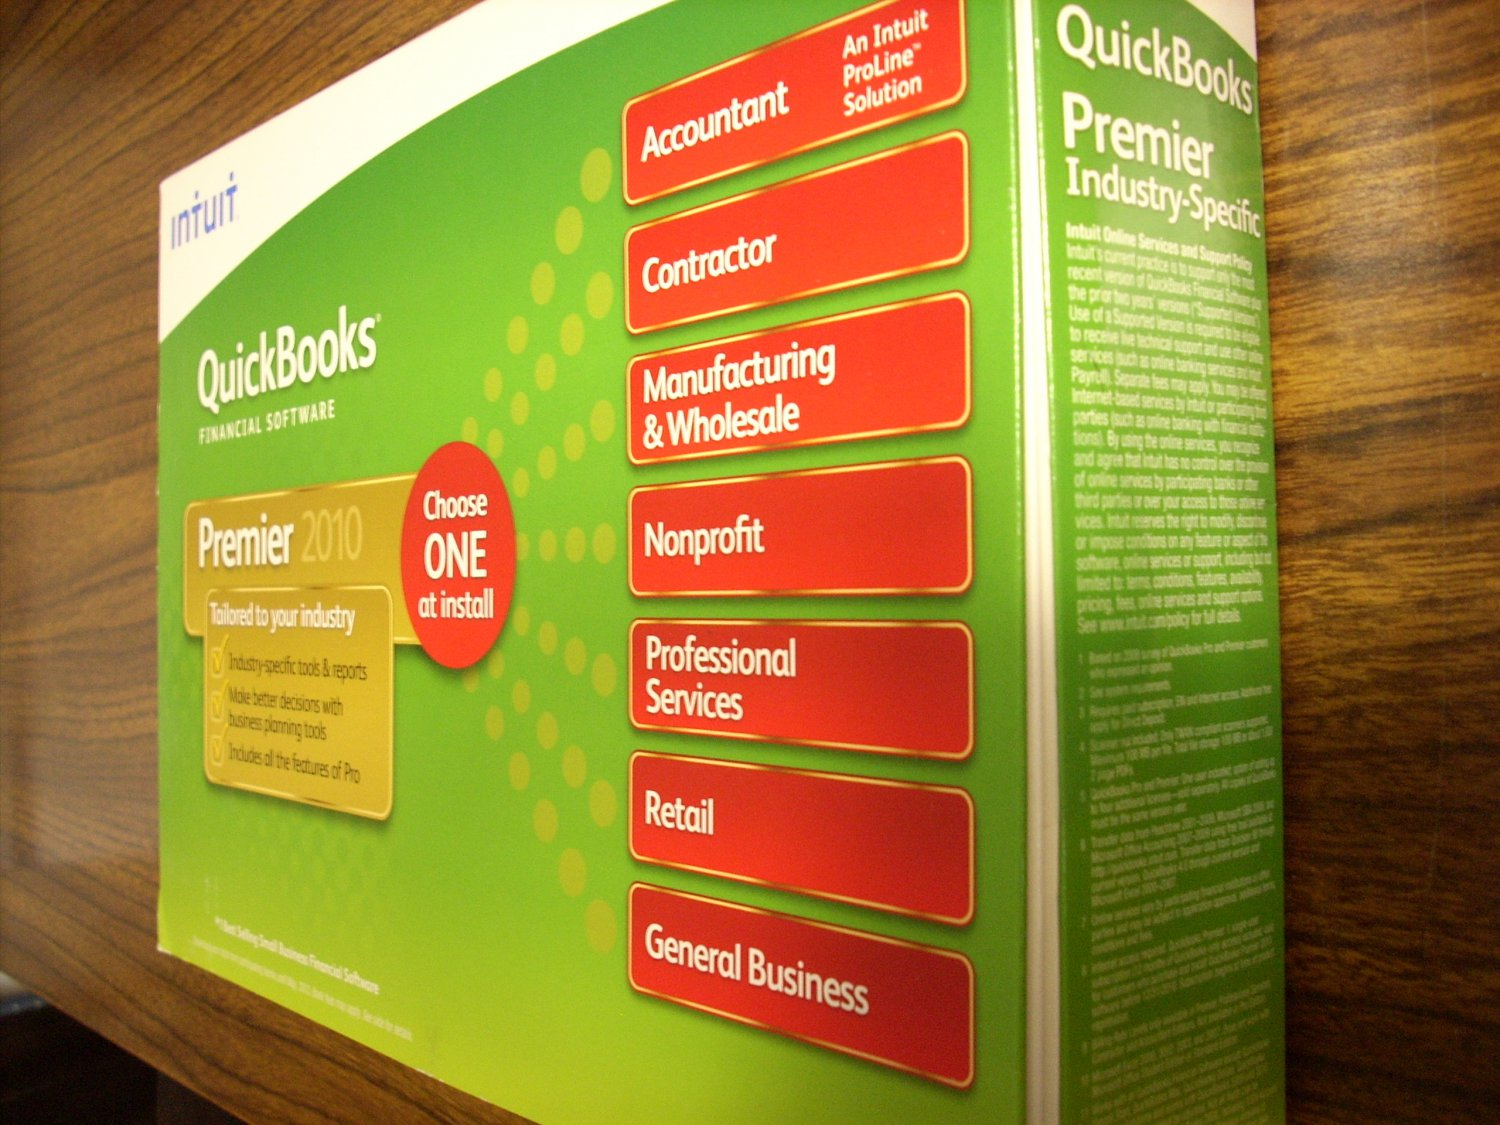 how to learn quickbooks fast free